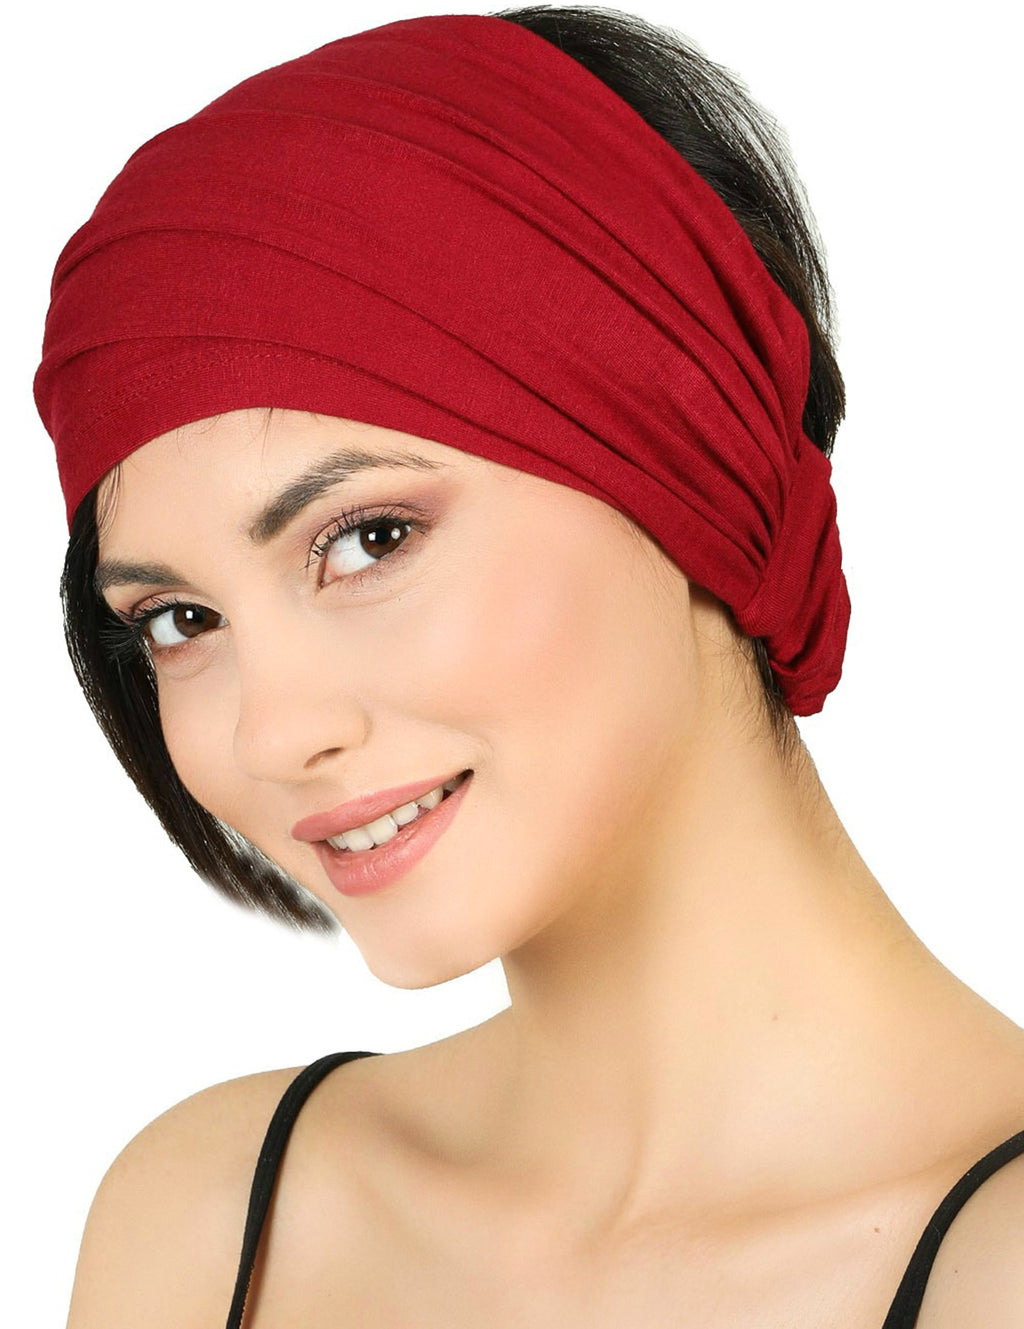 Elasticated Stretchy Headband - Burgundy